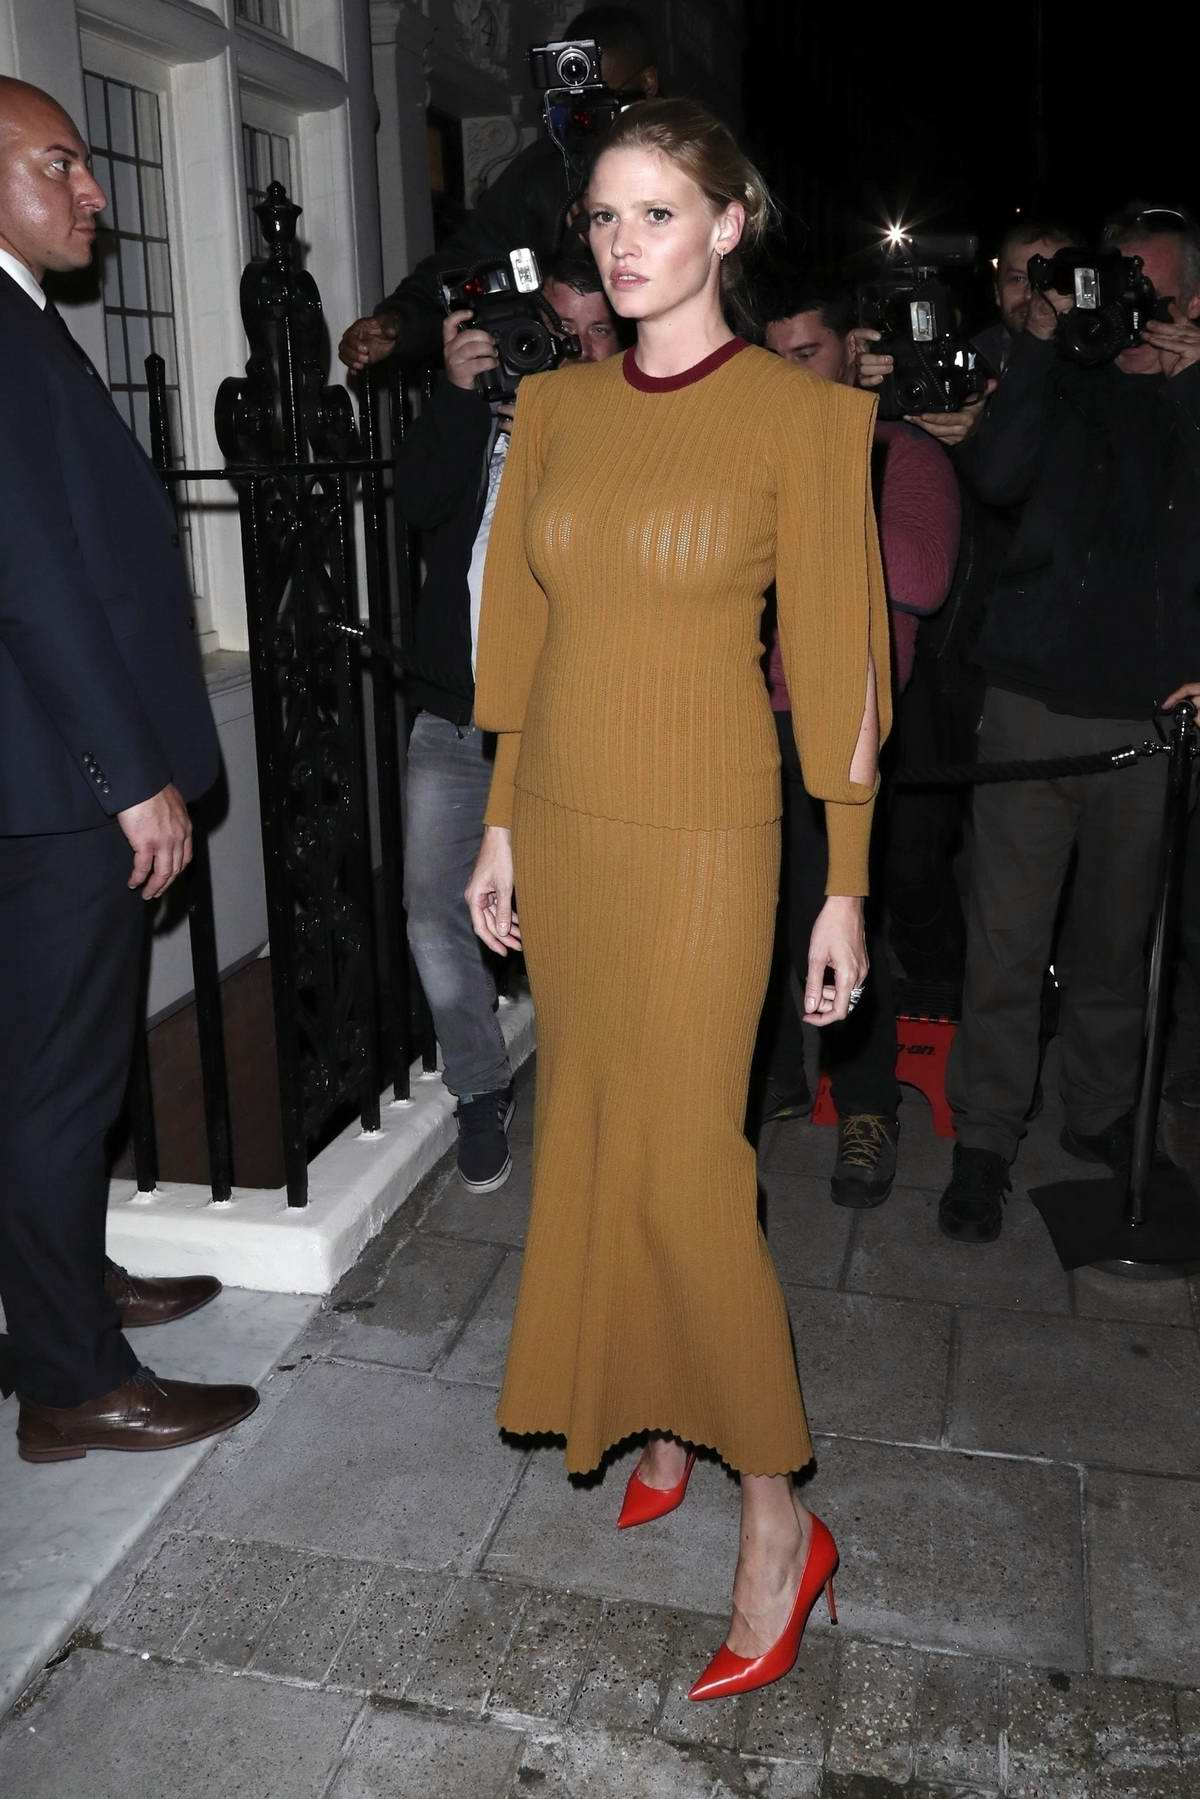 Lara Stone attends Victoria Beckham x Vogue Party at Mark's Club during London Fashion Week in London, UK